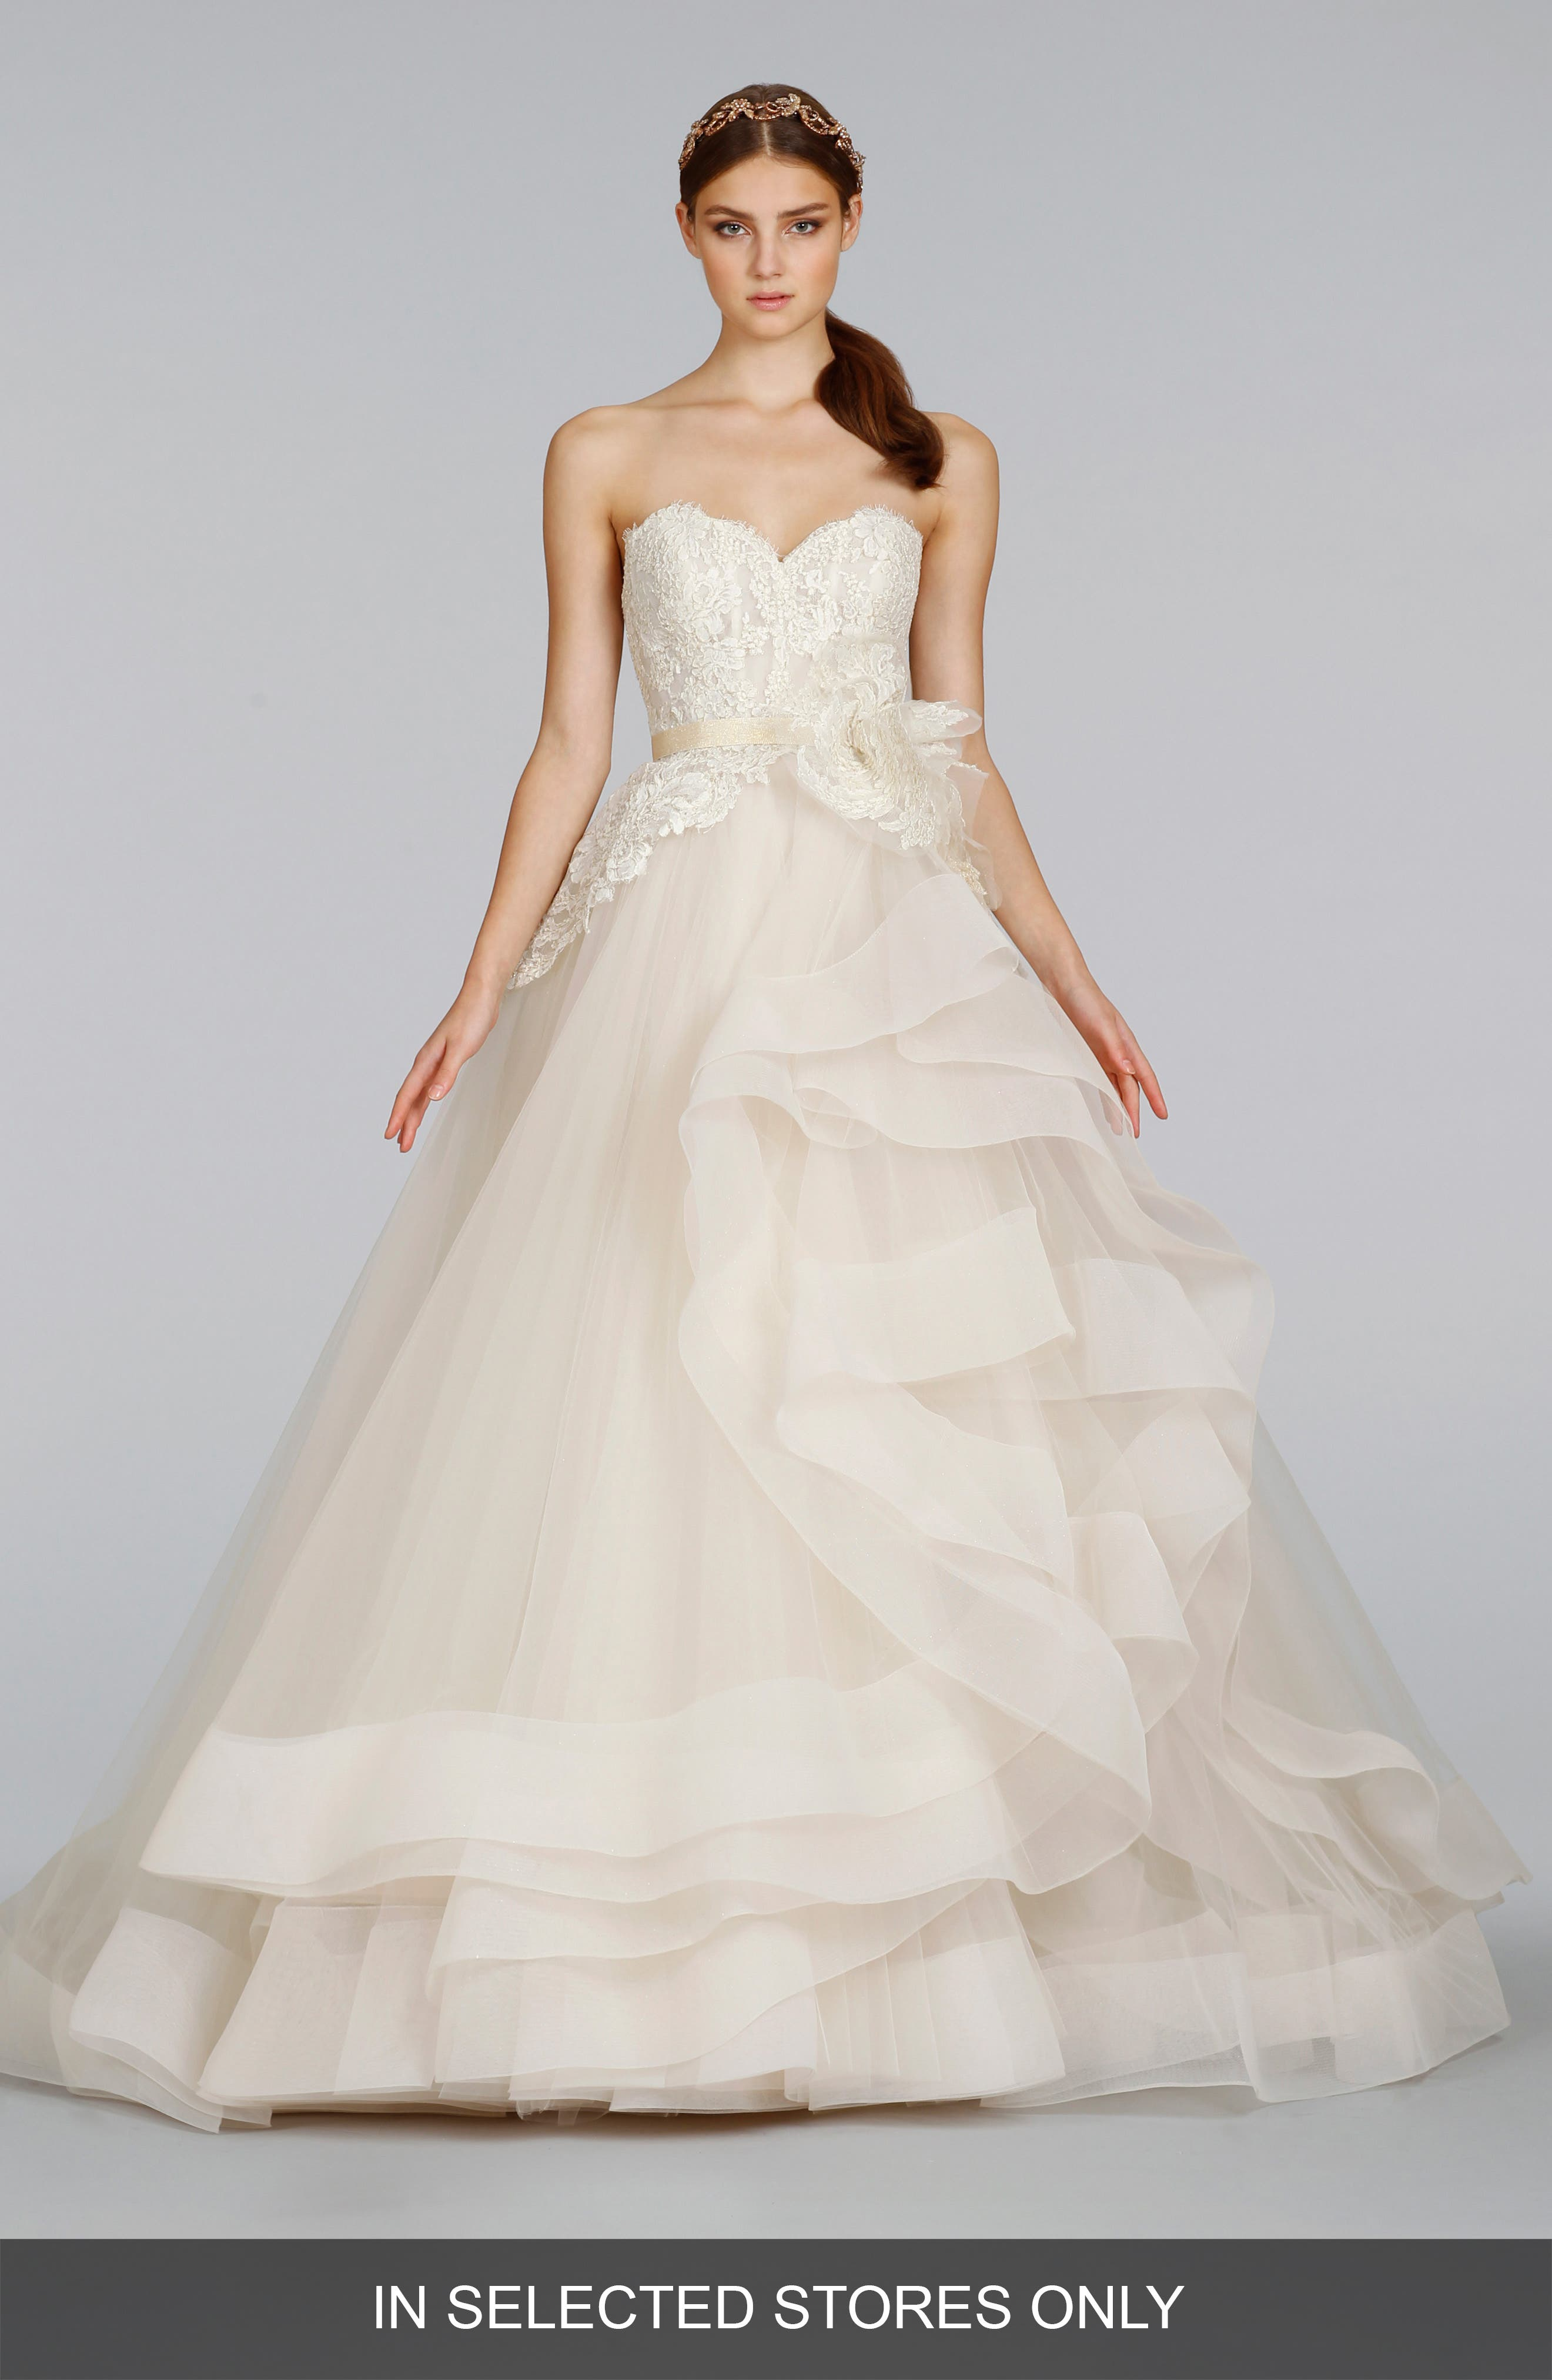 Strapless Lace & Layered Tulle Ballgown,                             Alternate thumbnail 4, color,                             IVORY/GOLD/CHAMPAGNE